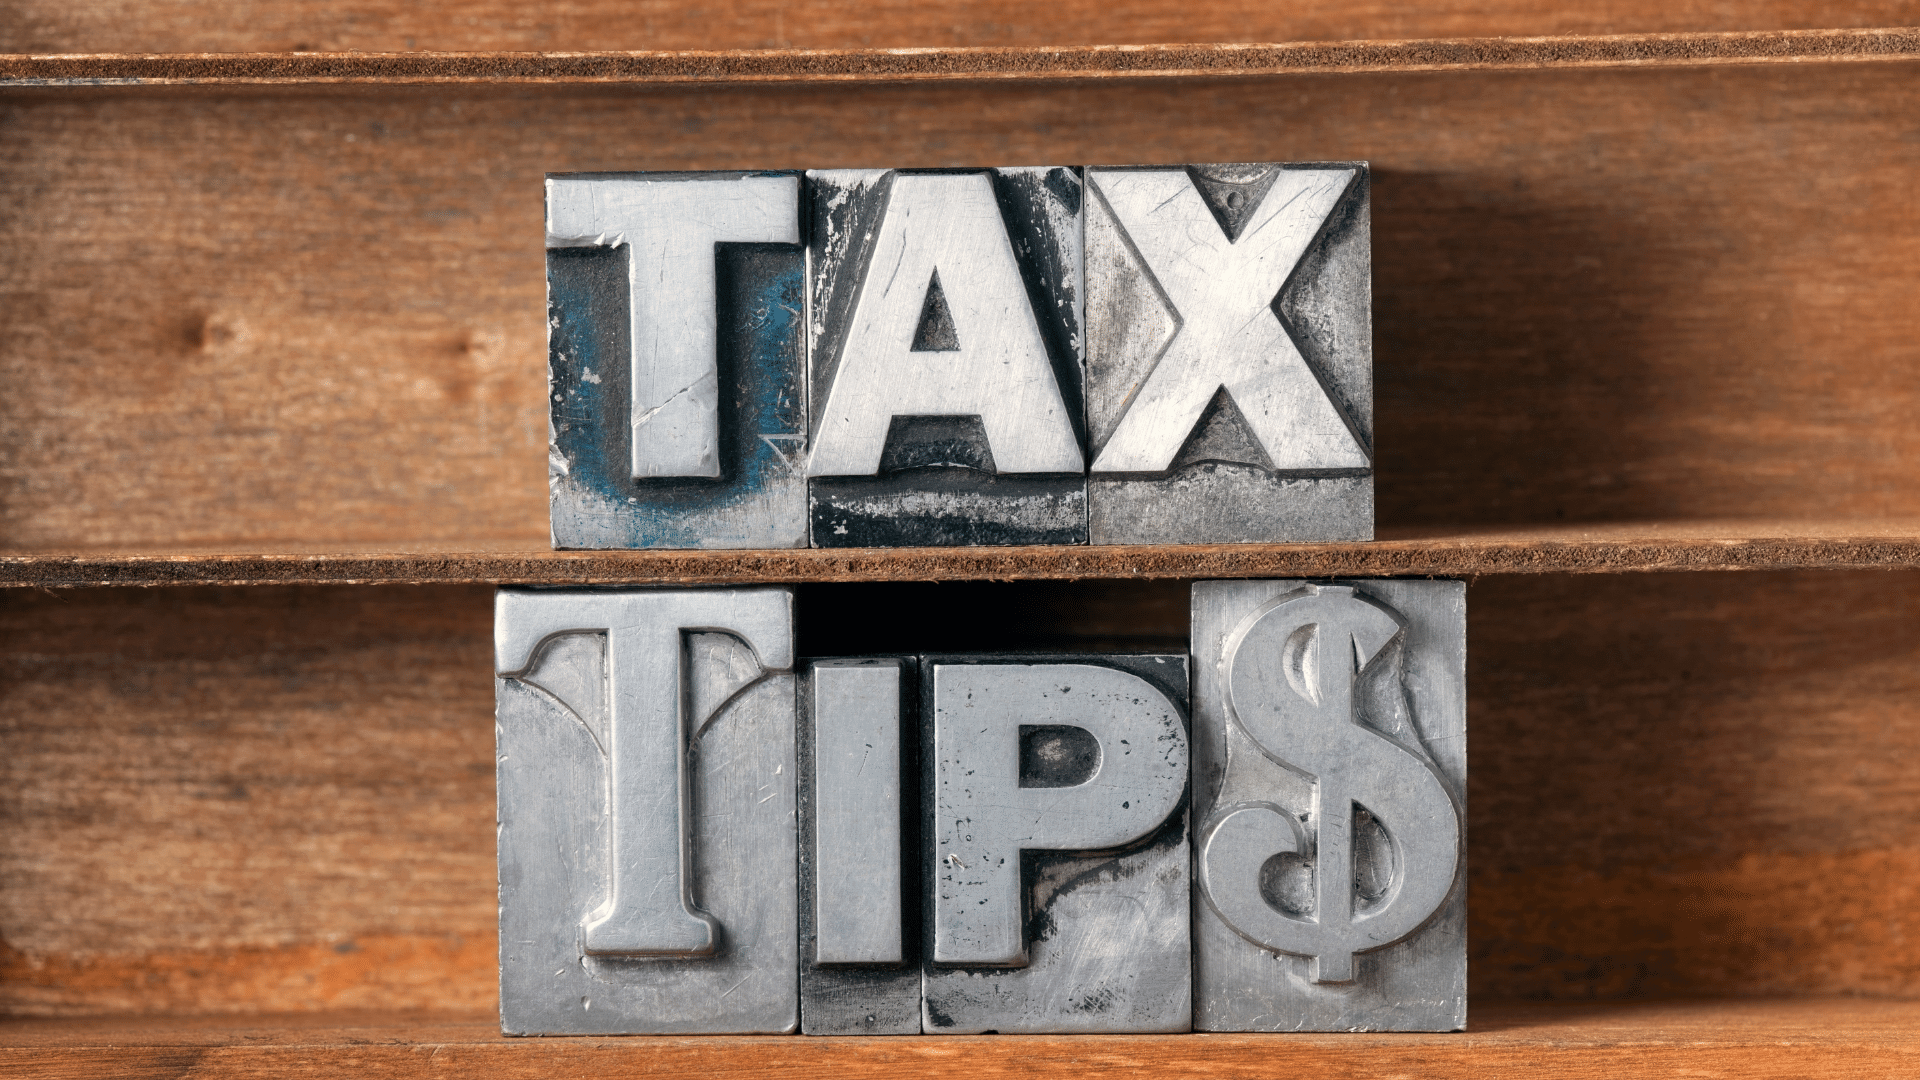 Tax Tip$ metal letter blocks set against a wood background. Helpful Tips for RV Owners on the Tax Benefits Available